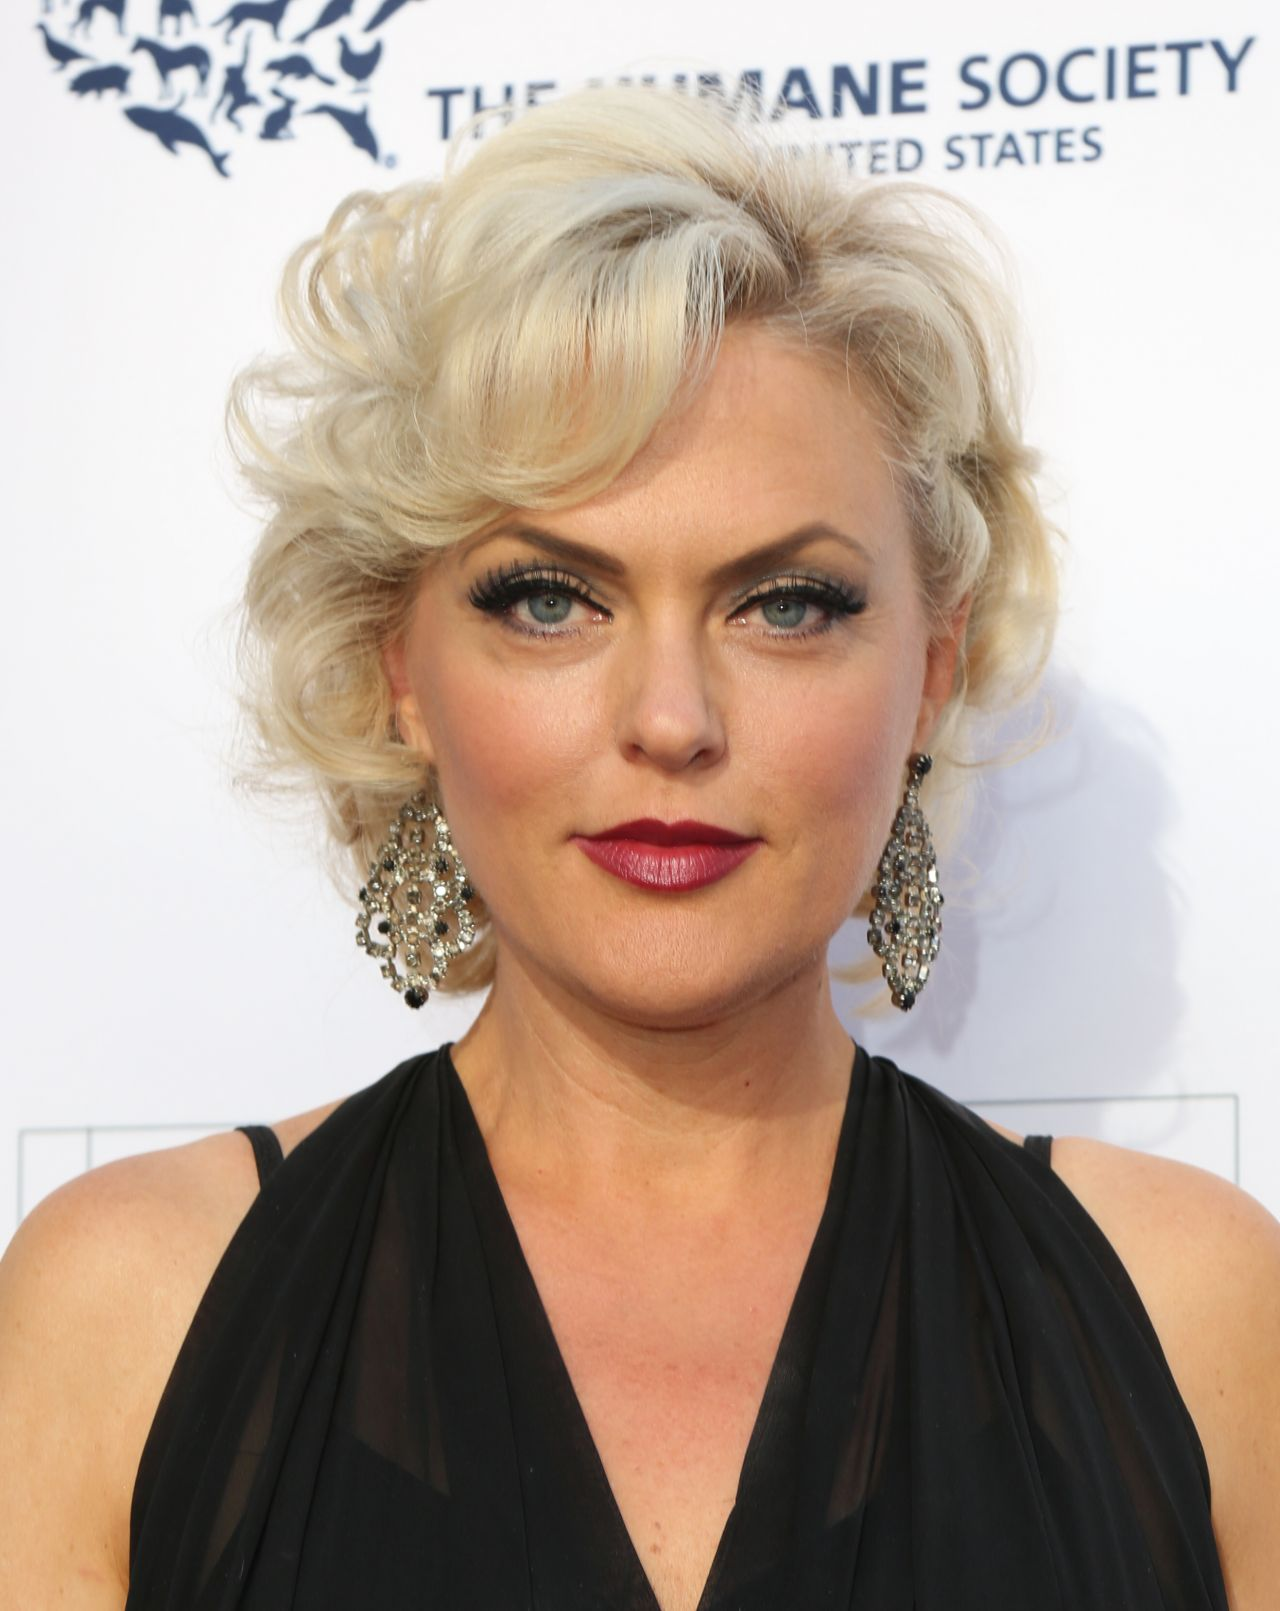 Fotos Elaine Hendrix nude (59 foto and video), Sexy, Paparazzi, Twitter, legs 2015